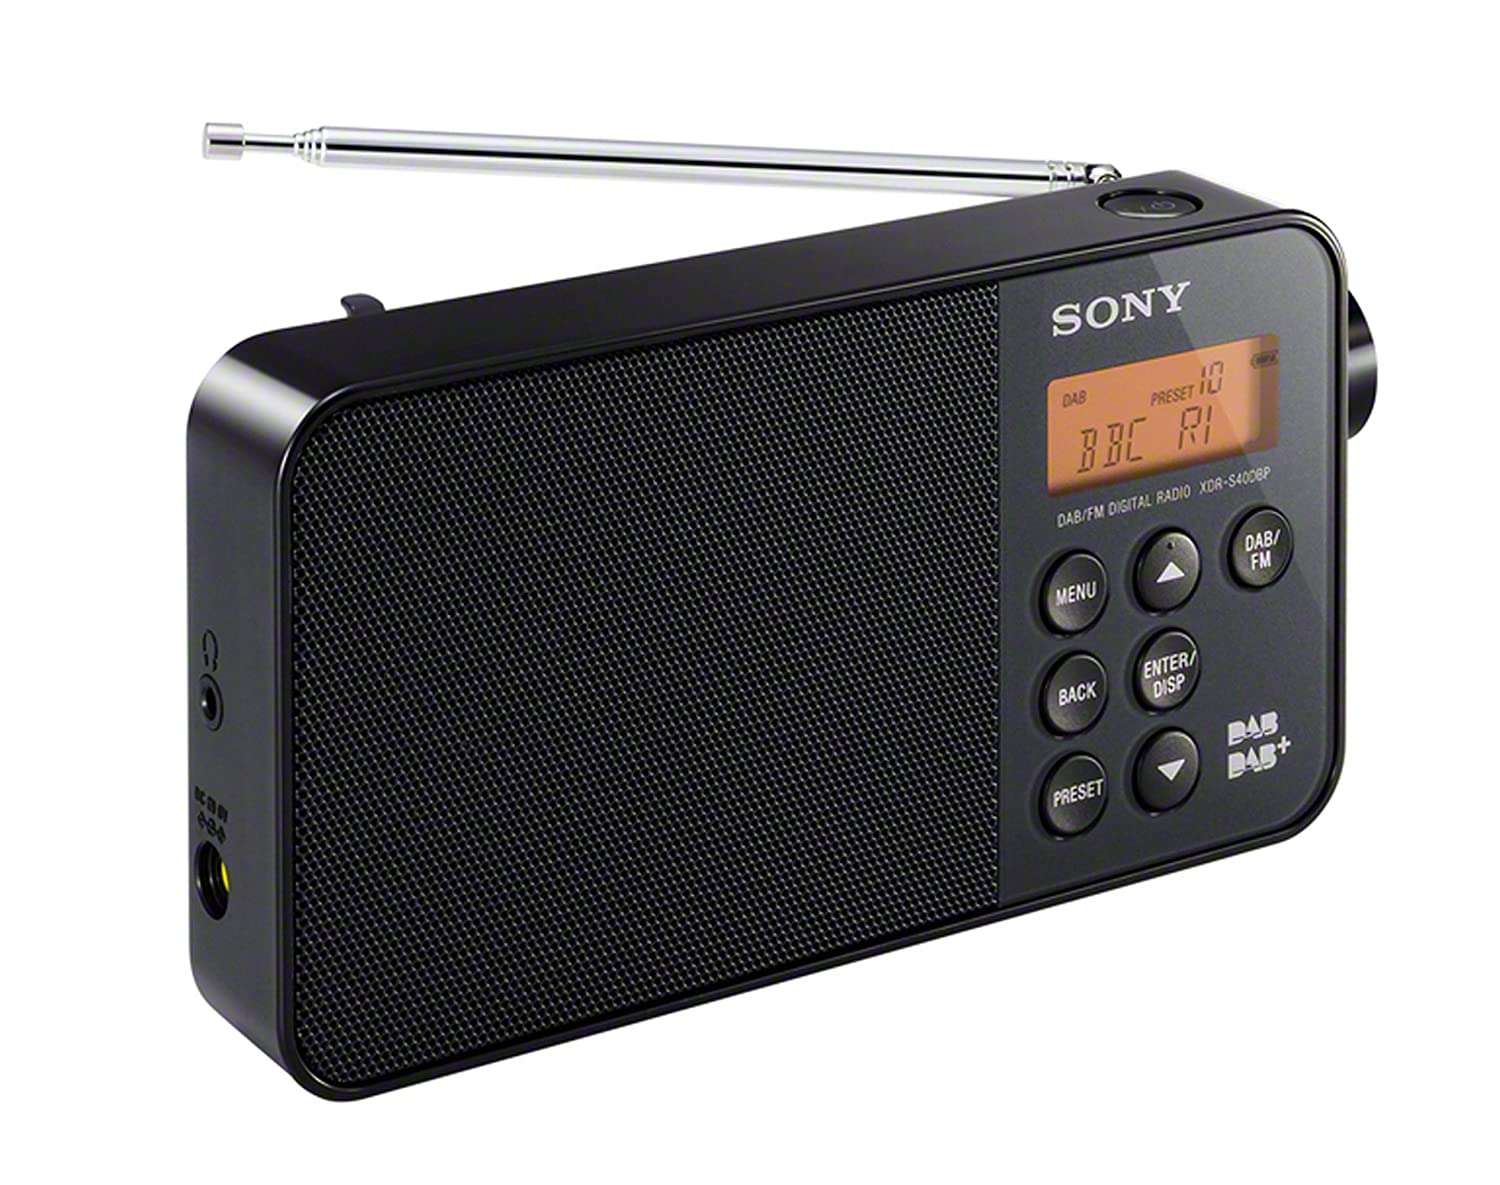 sony xdr s40 dab dab fm ultra compact portable digital. Black Bedroom Furniture Sets. Home Design Ideas